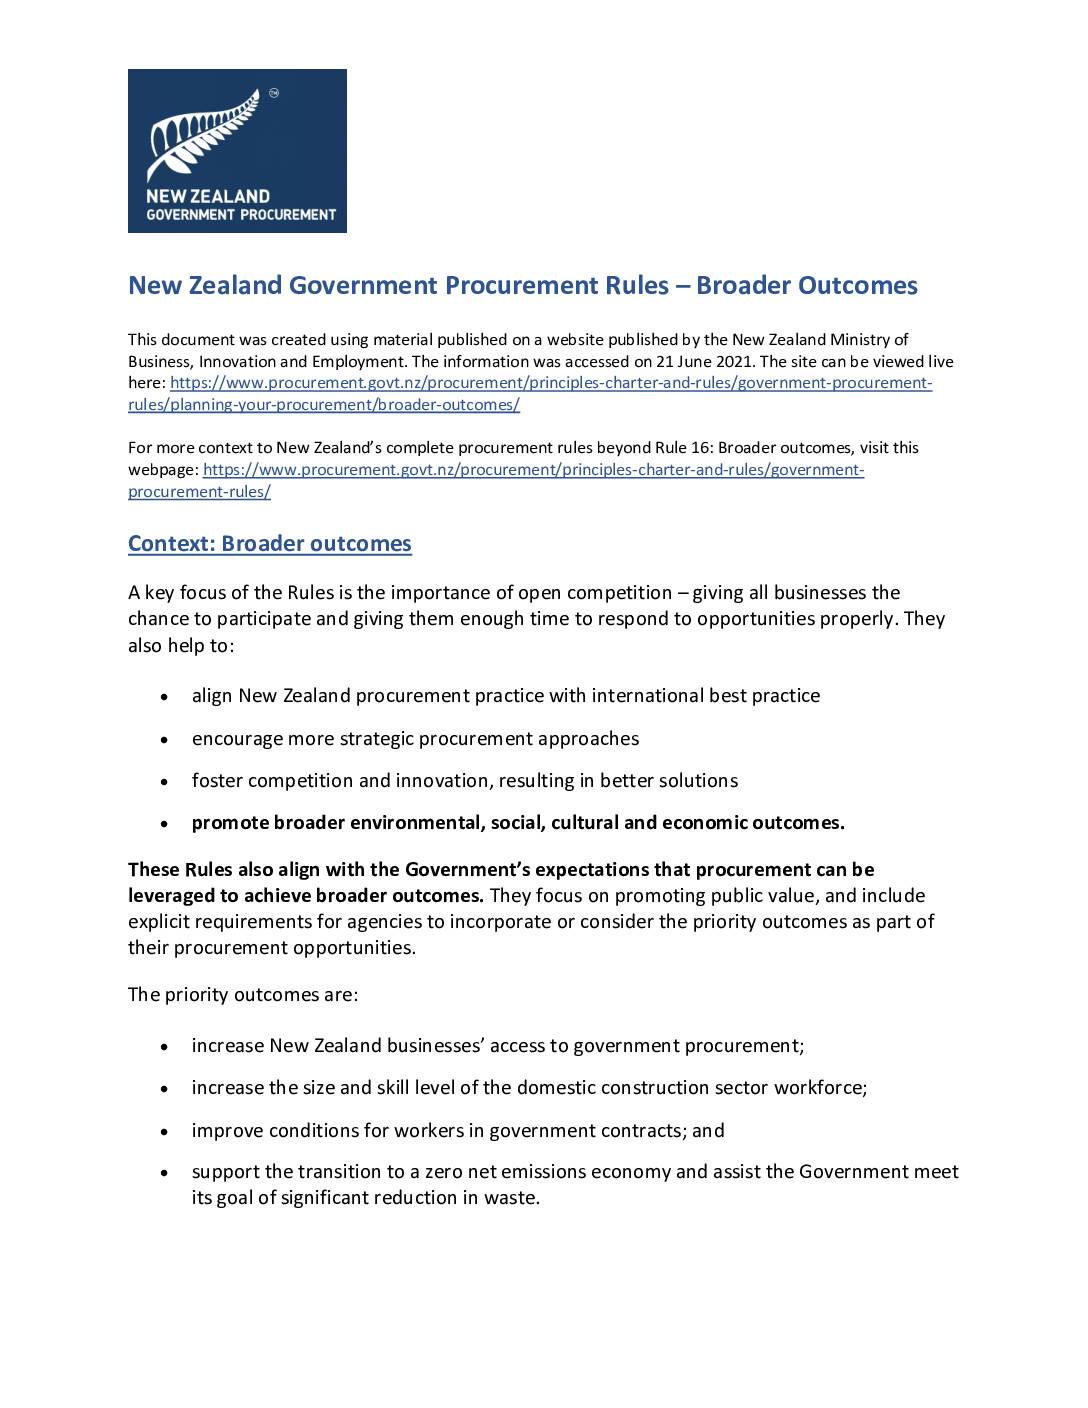 Government Procurement Rules: Broader Outcomes